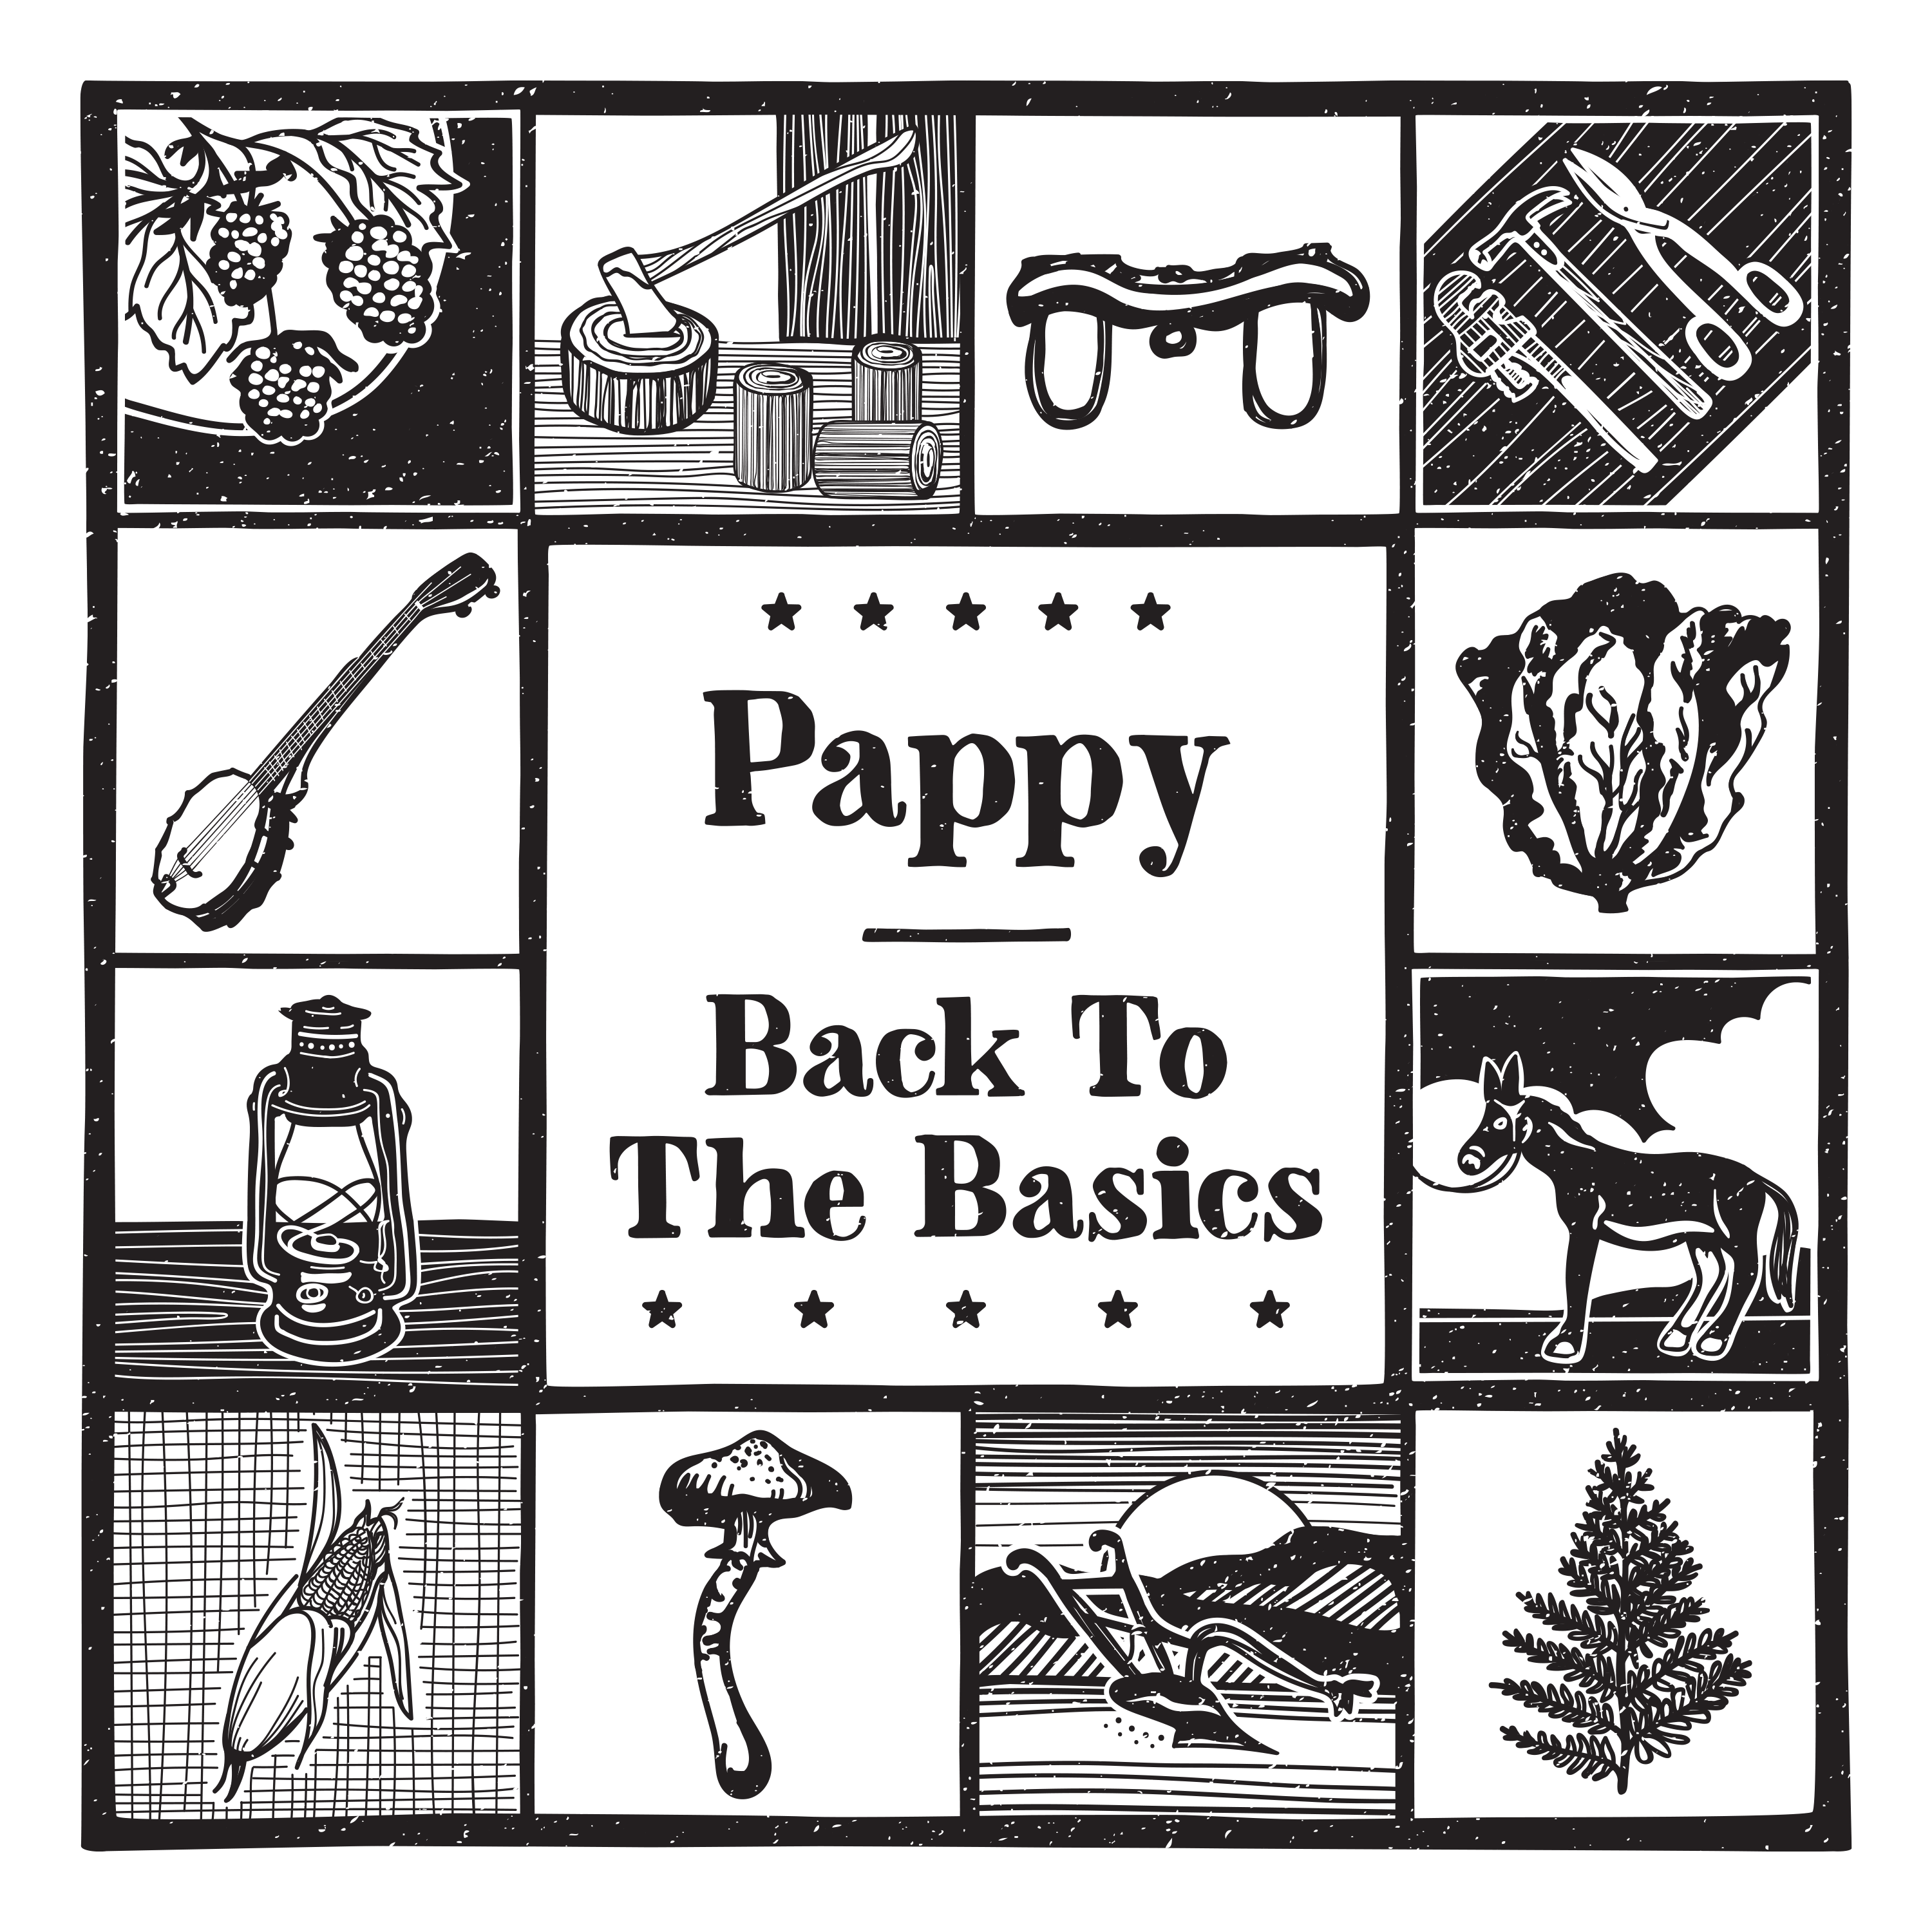 Pappy,